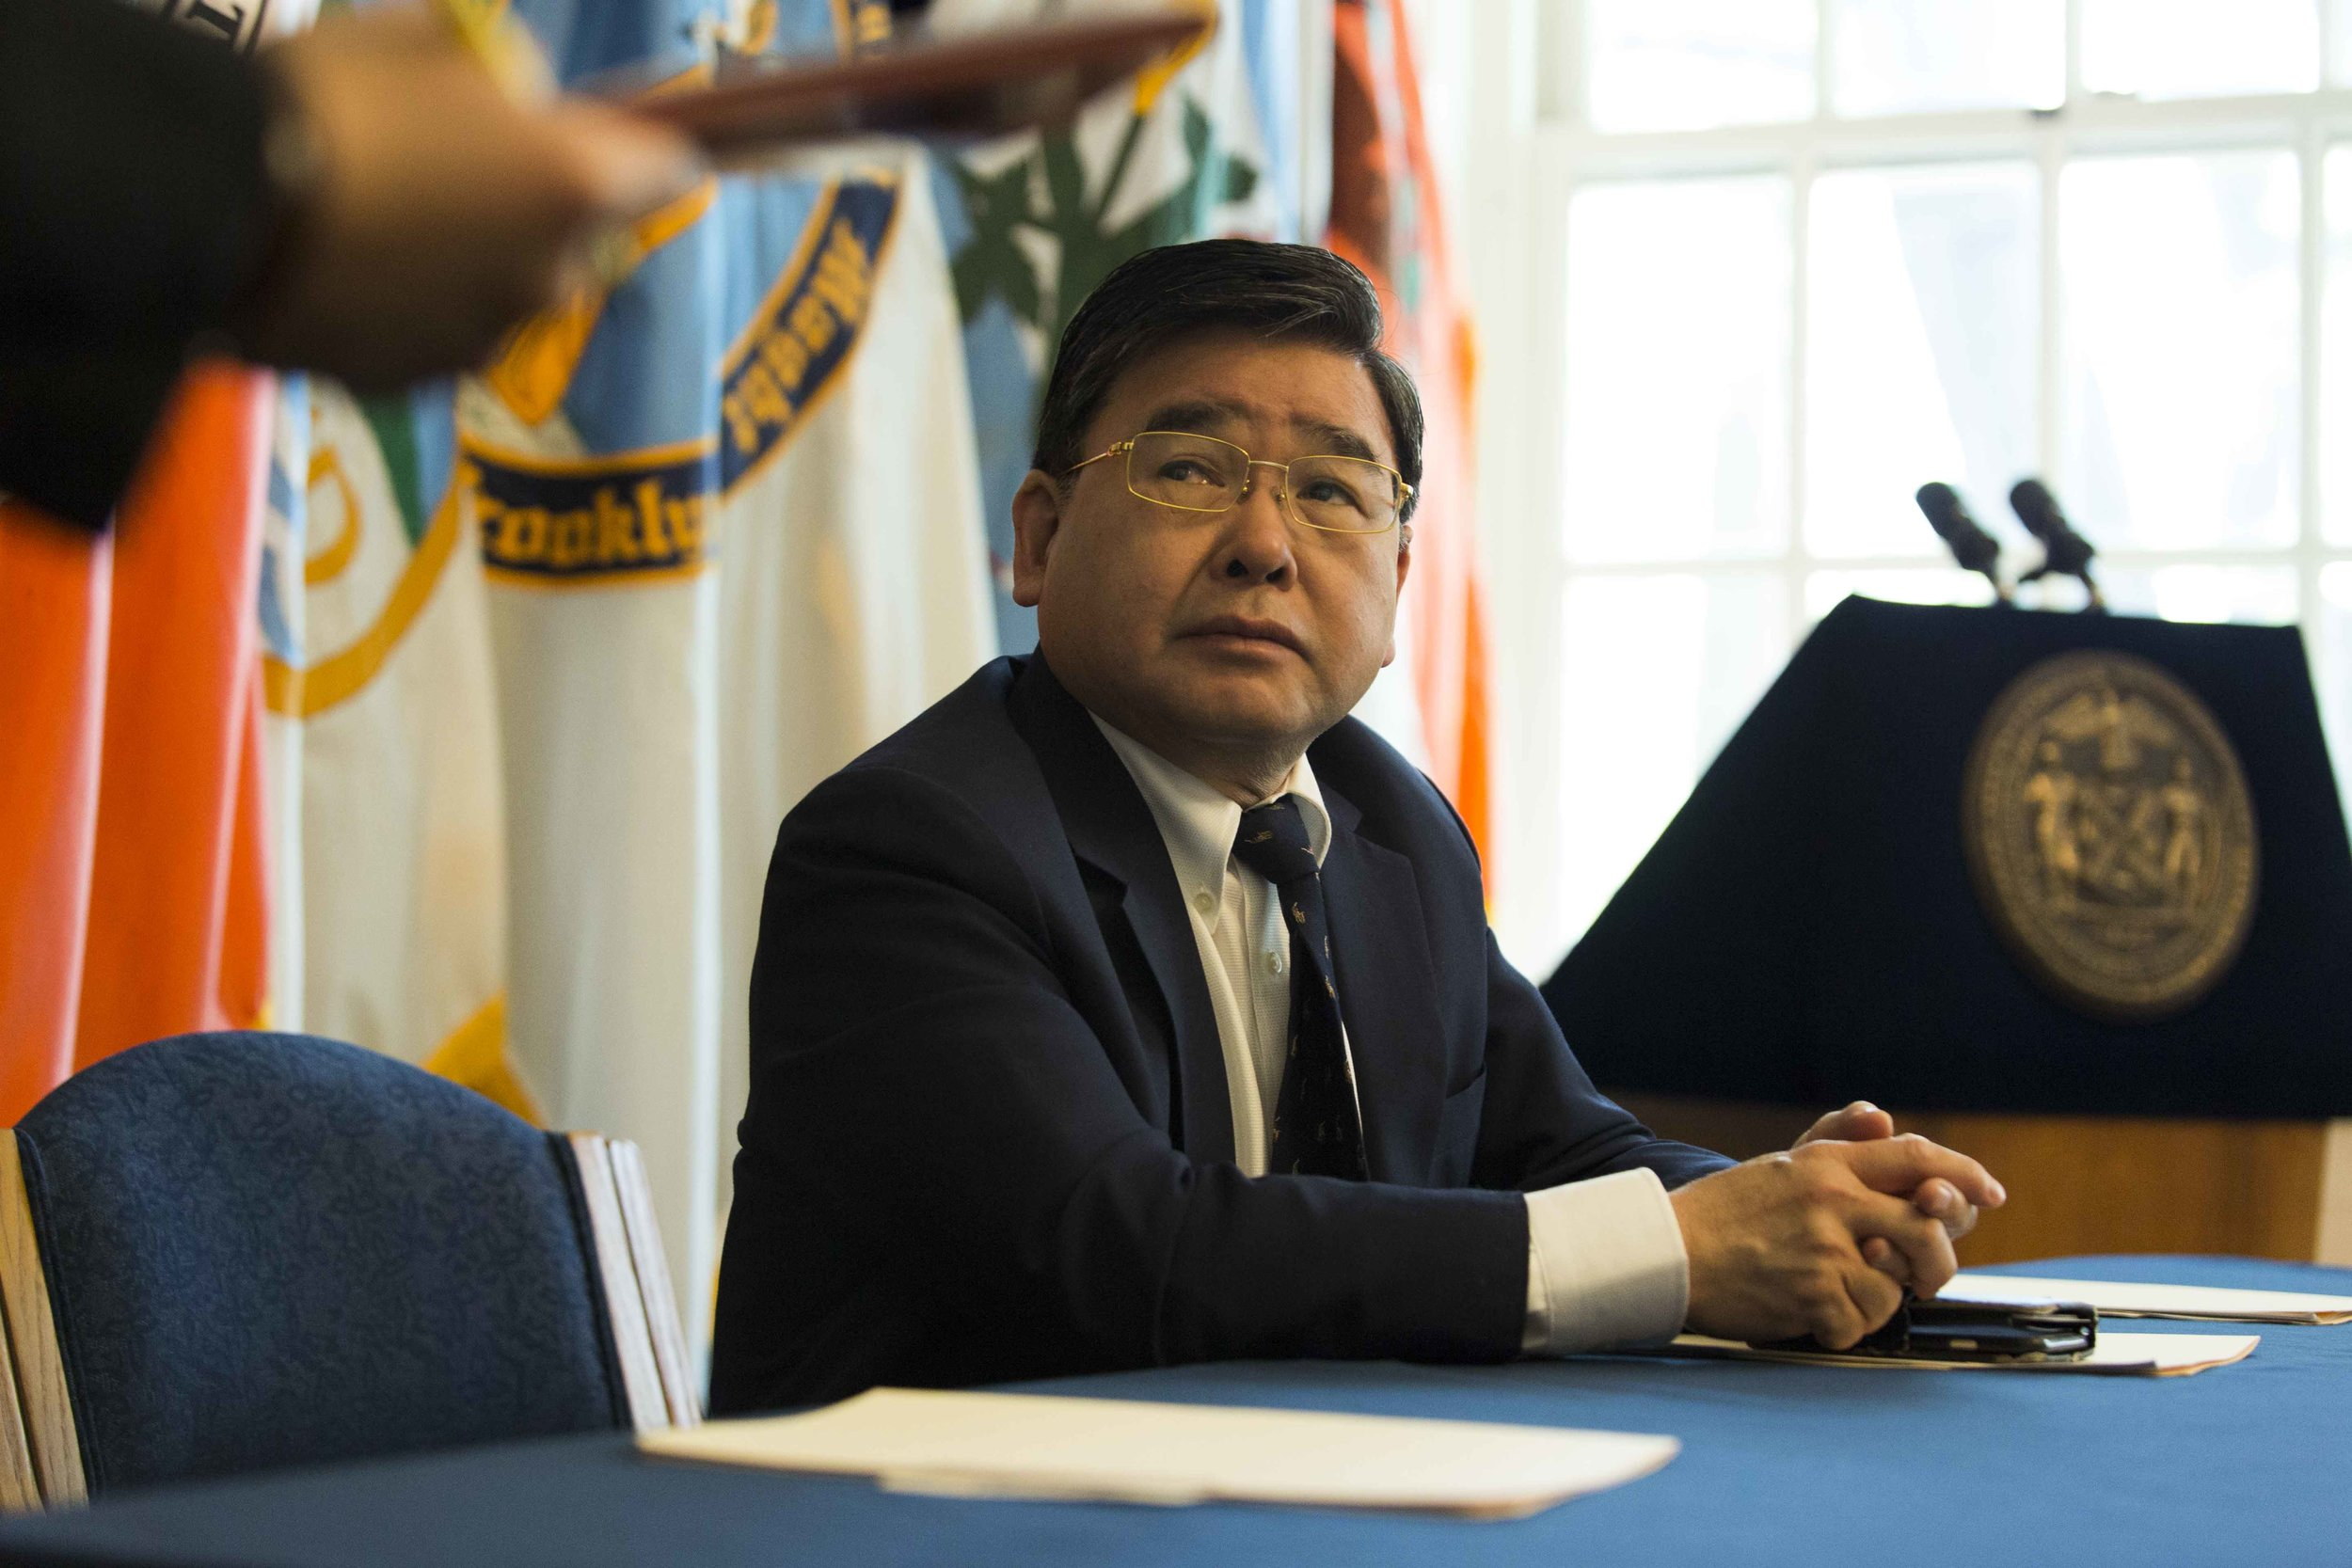 Councilmember Peter Koo takes over as new chair of the Council's Committee on Parks and Recreation. Photo by Emil Cohen via City Council/Flickr.